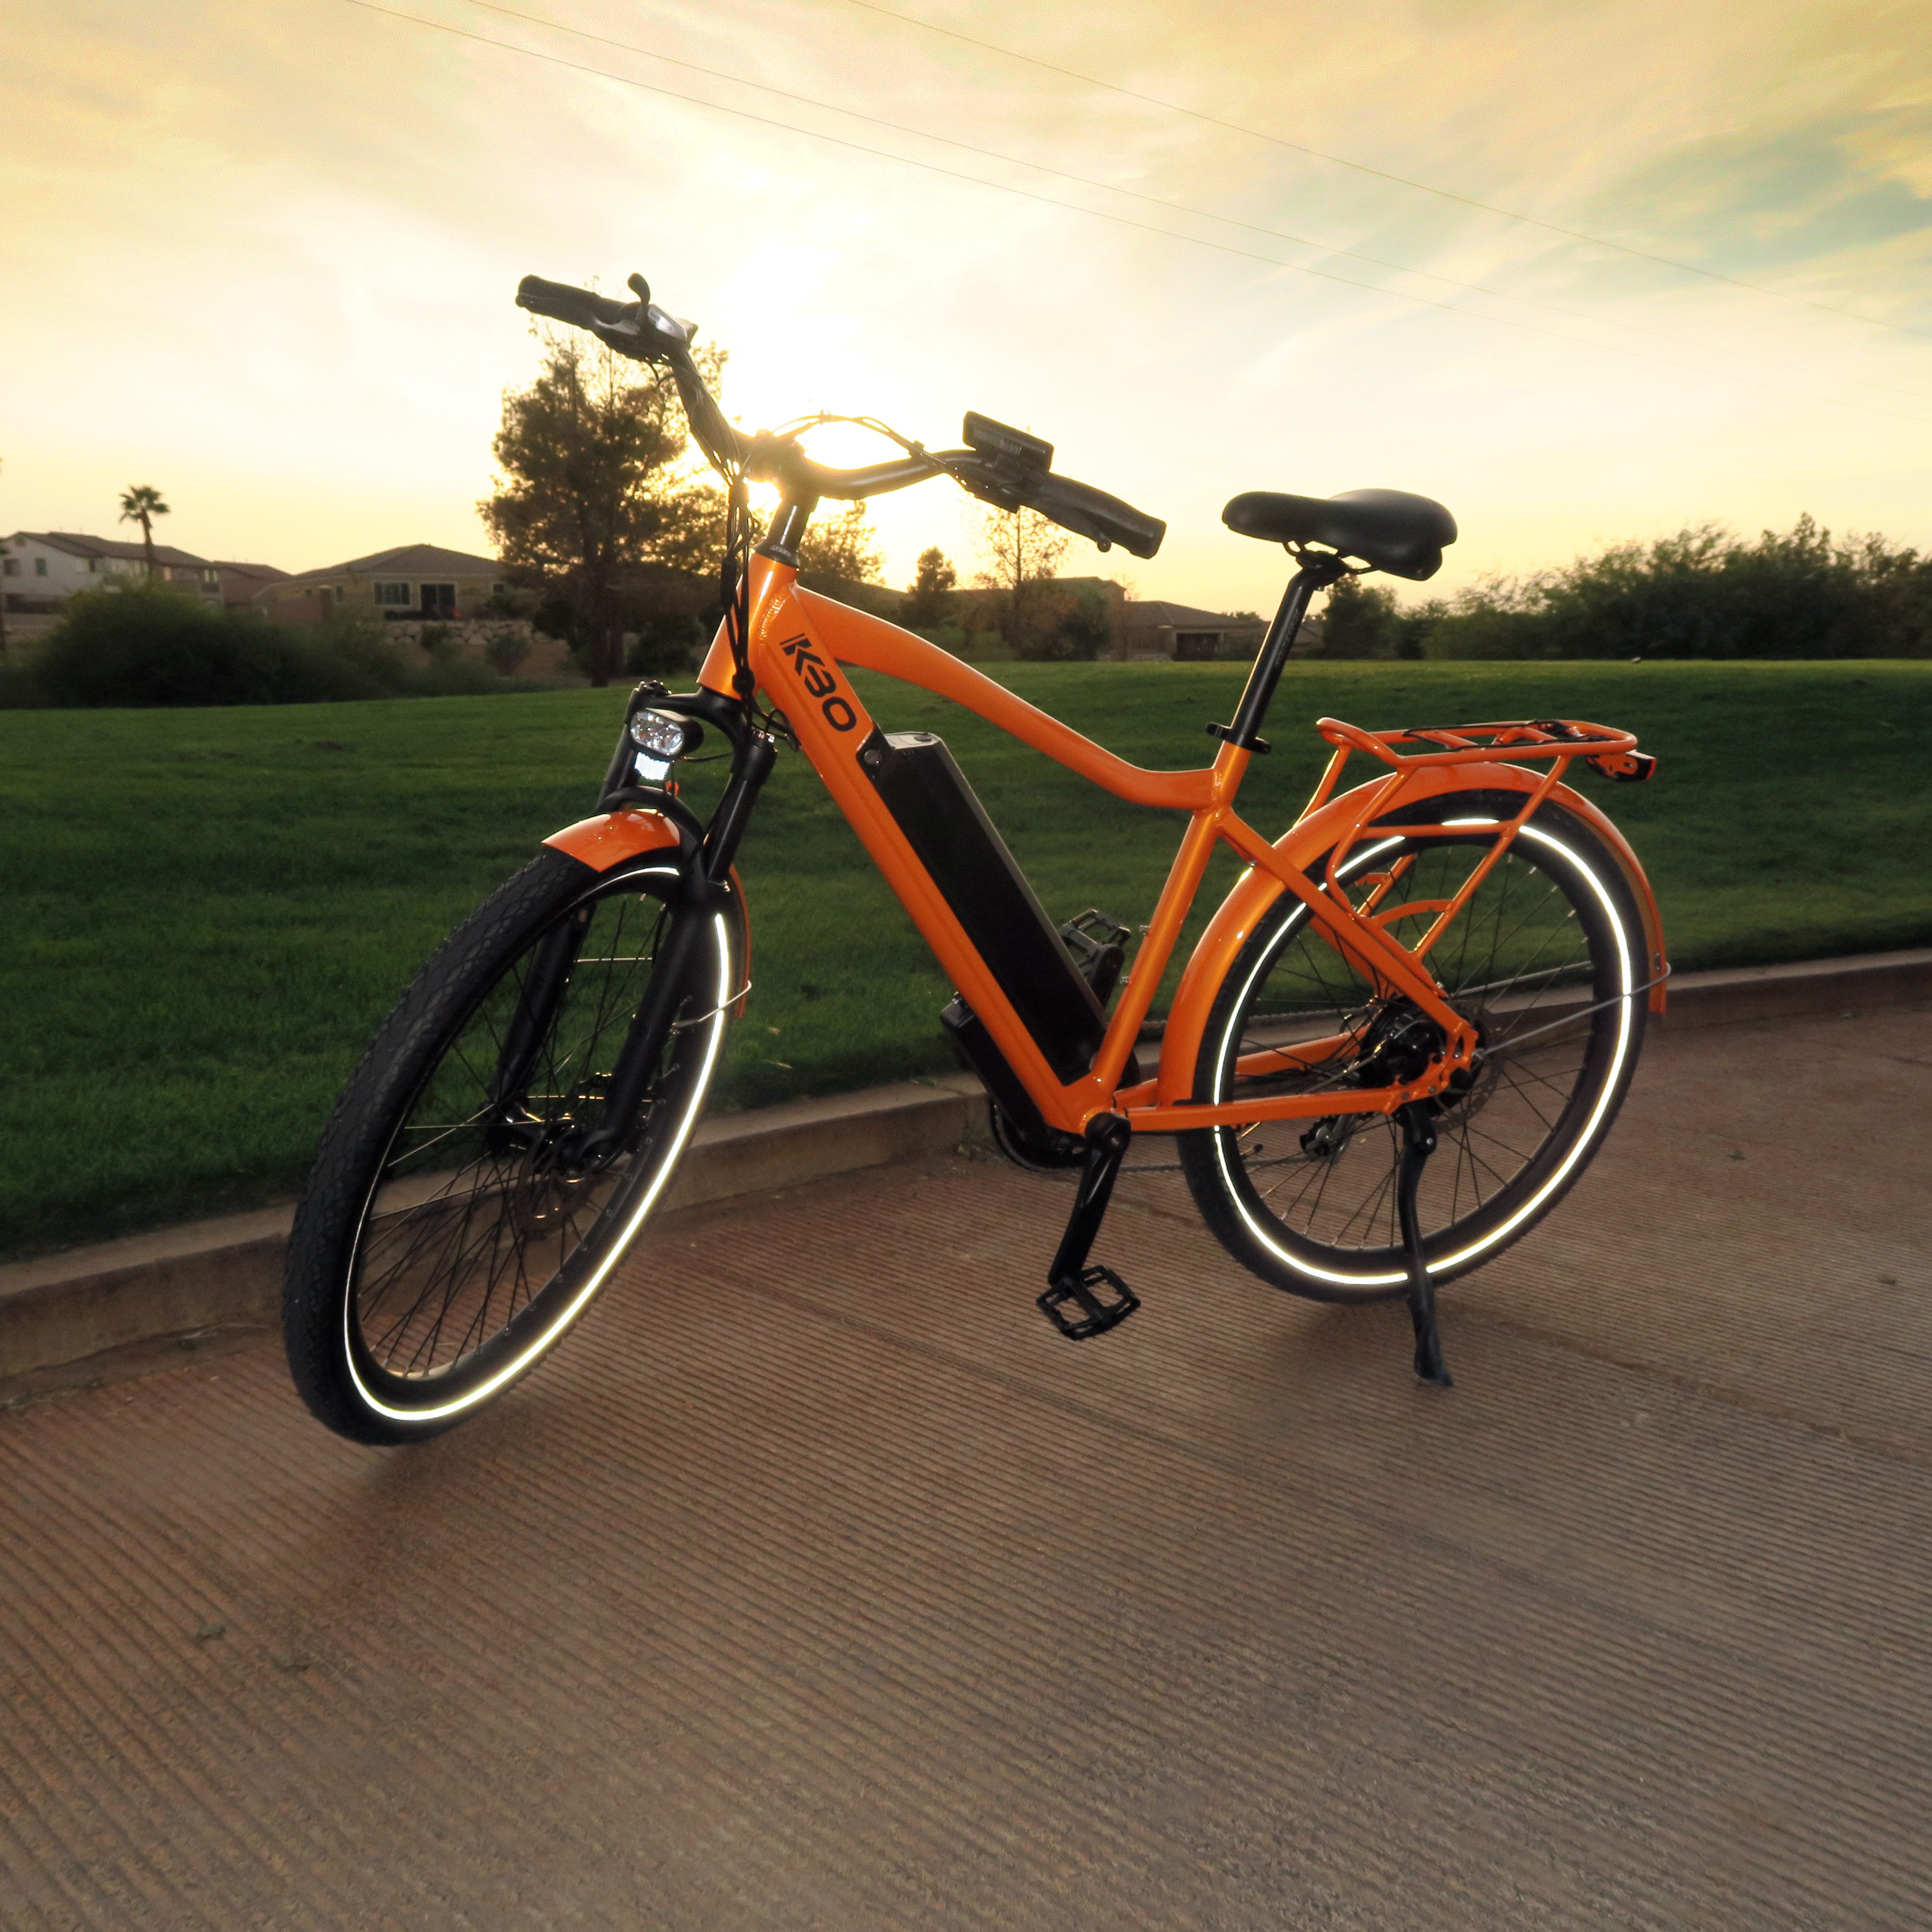 The KBO Bike: Cost Free-Commuting for Eco-Friendly and Sustainable Living